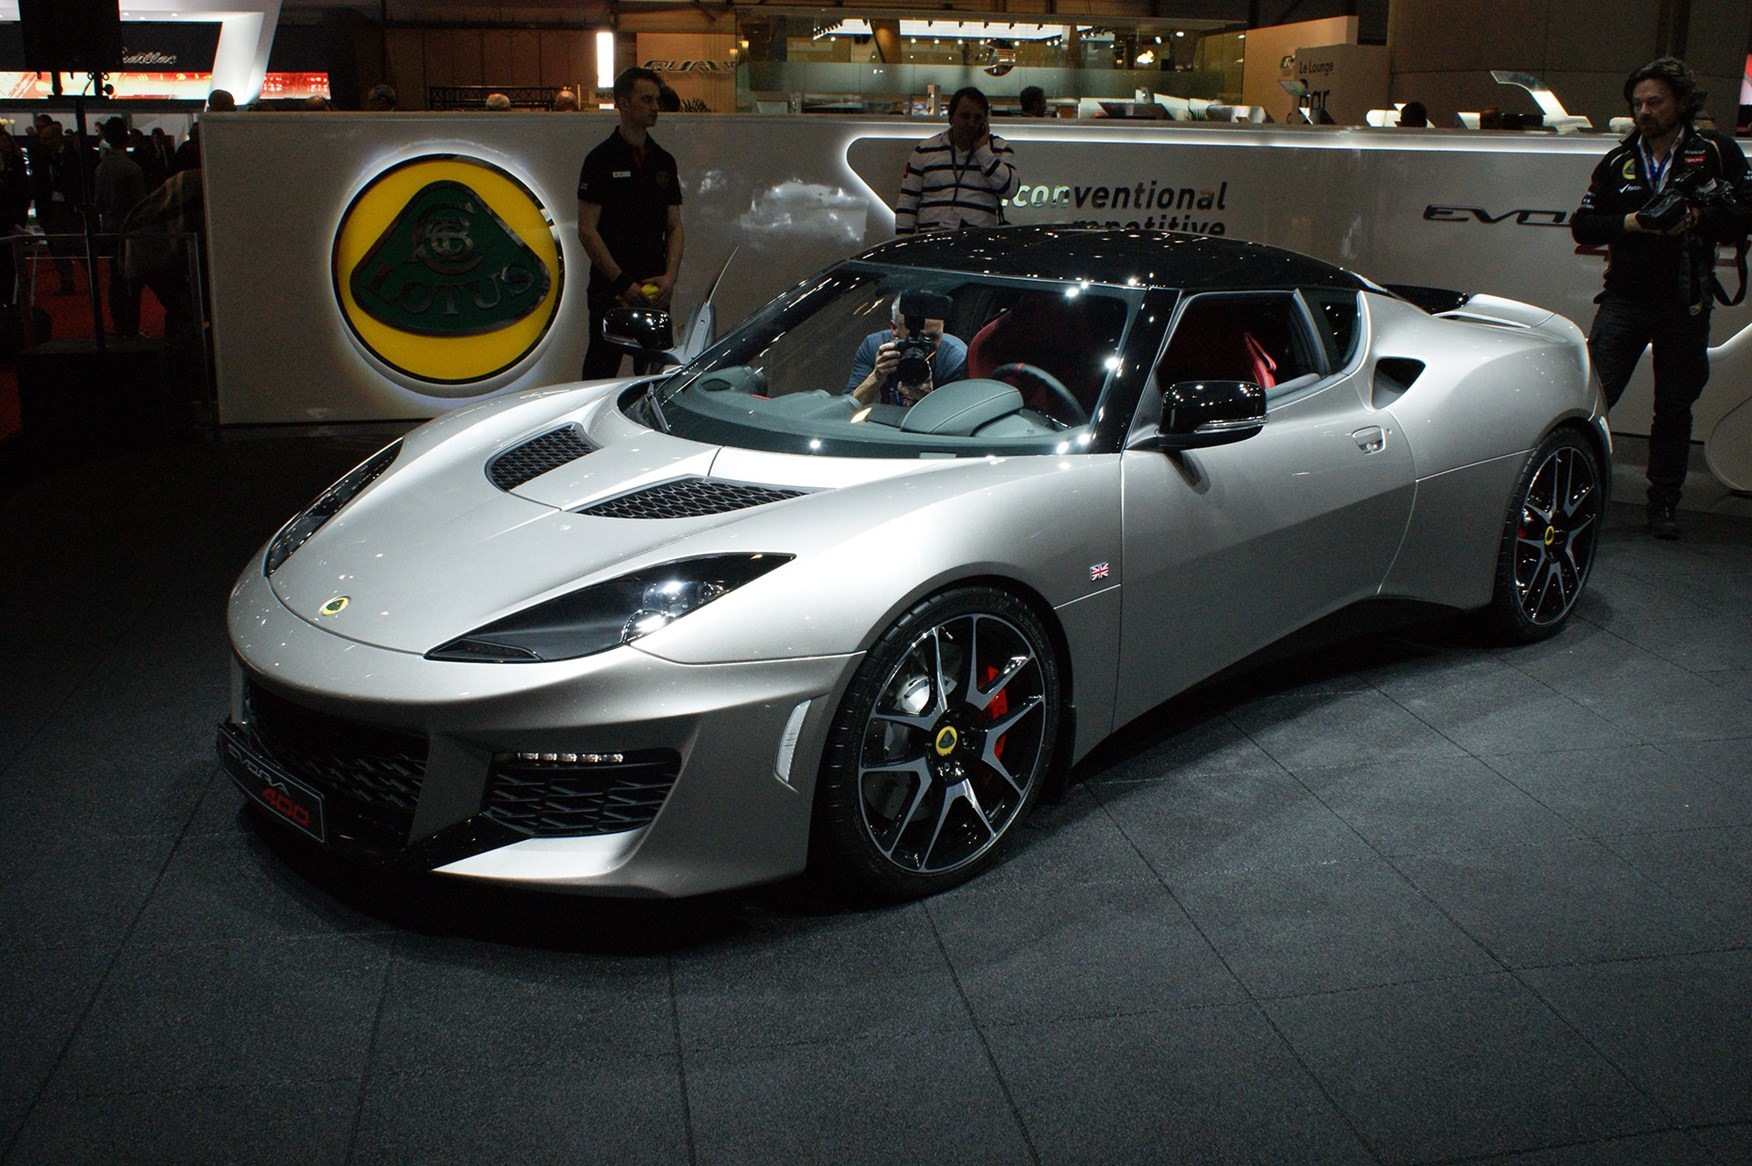 2019 Lotus Evora 400 photo - 5